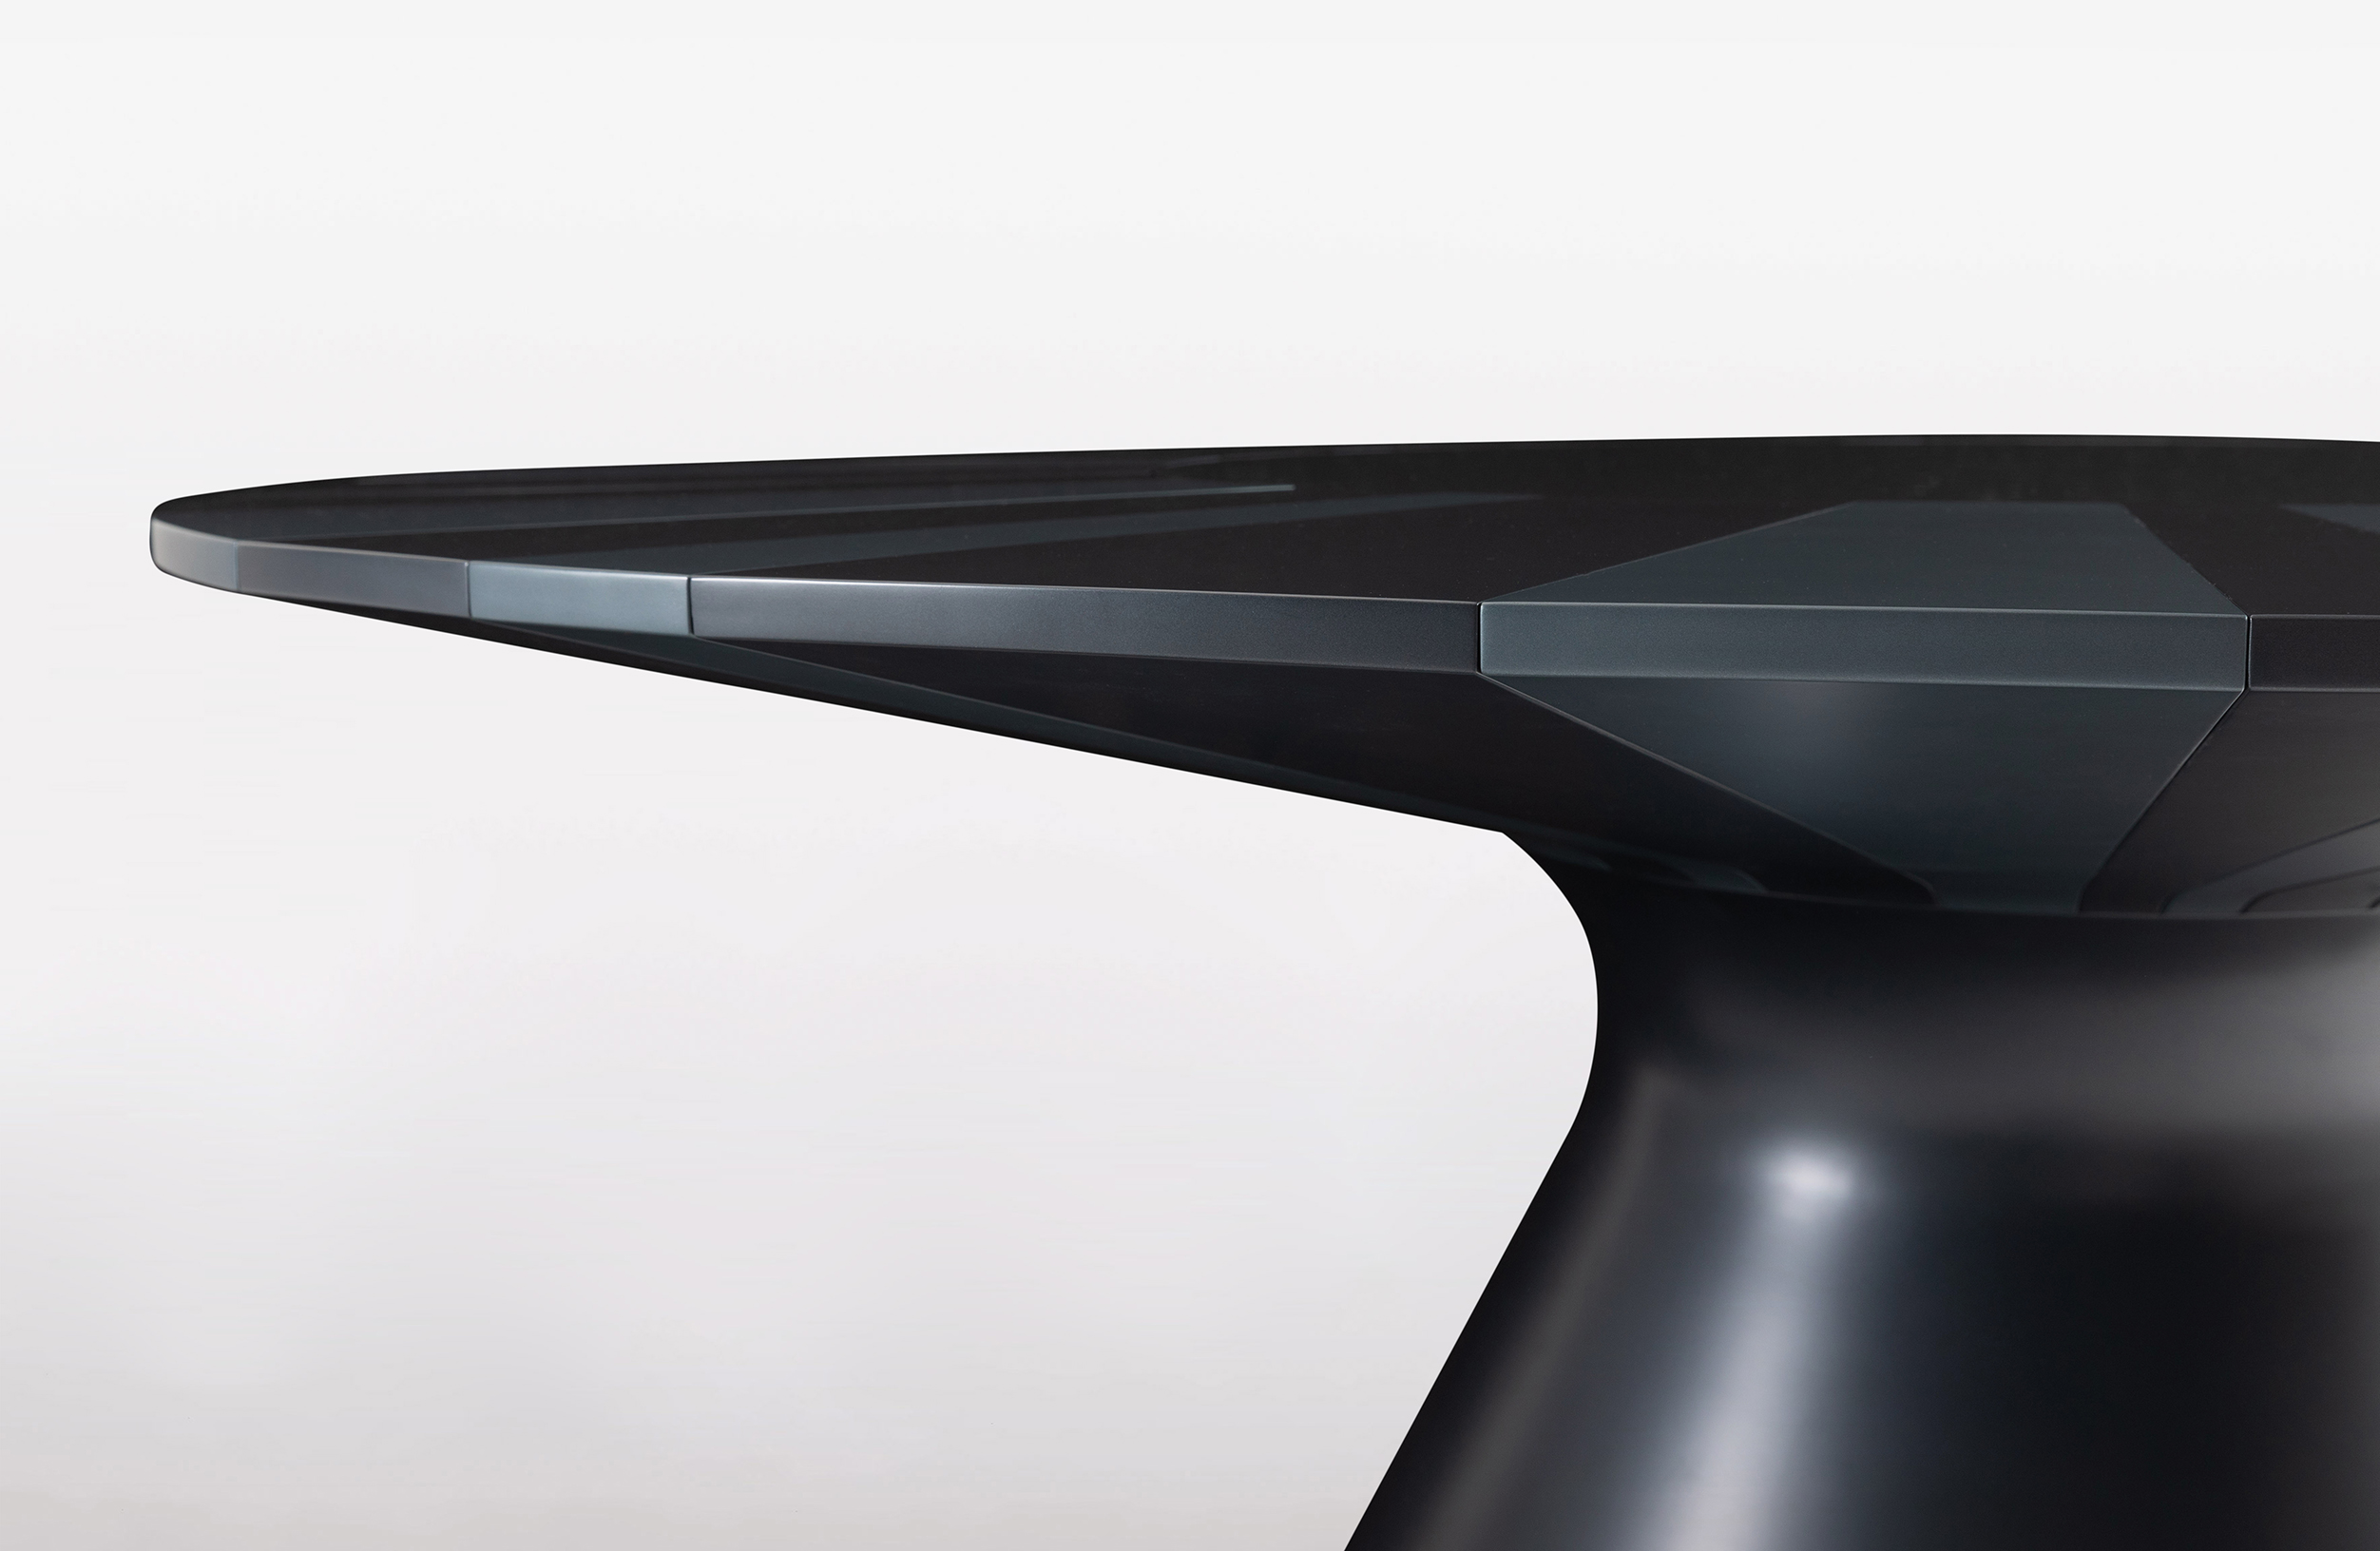 bugatti home-grand-prix-dining-table 03